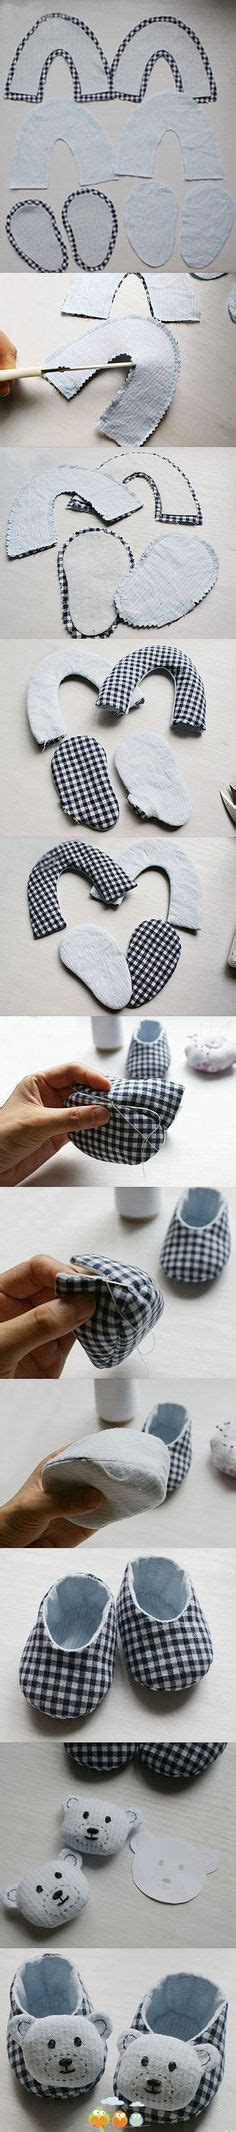 Sepatu Bayi Prewalker Kid Shoes Lks364 White how to sew baby booties that don t fall free pattern stitchesandsunflowers sewing